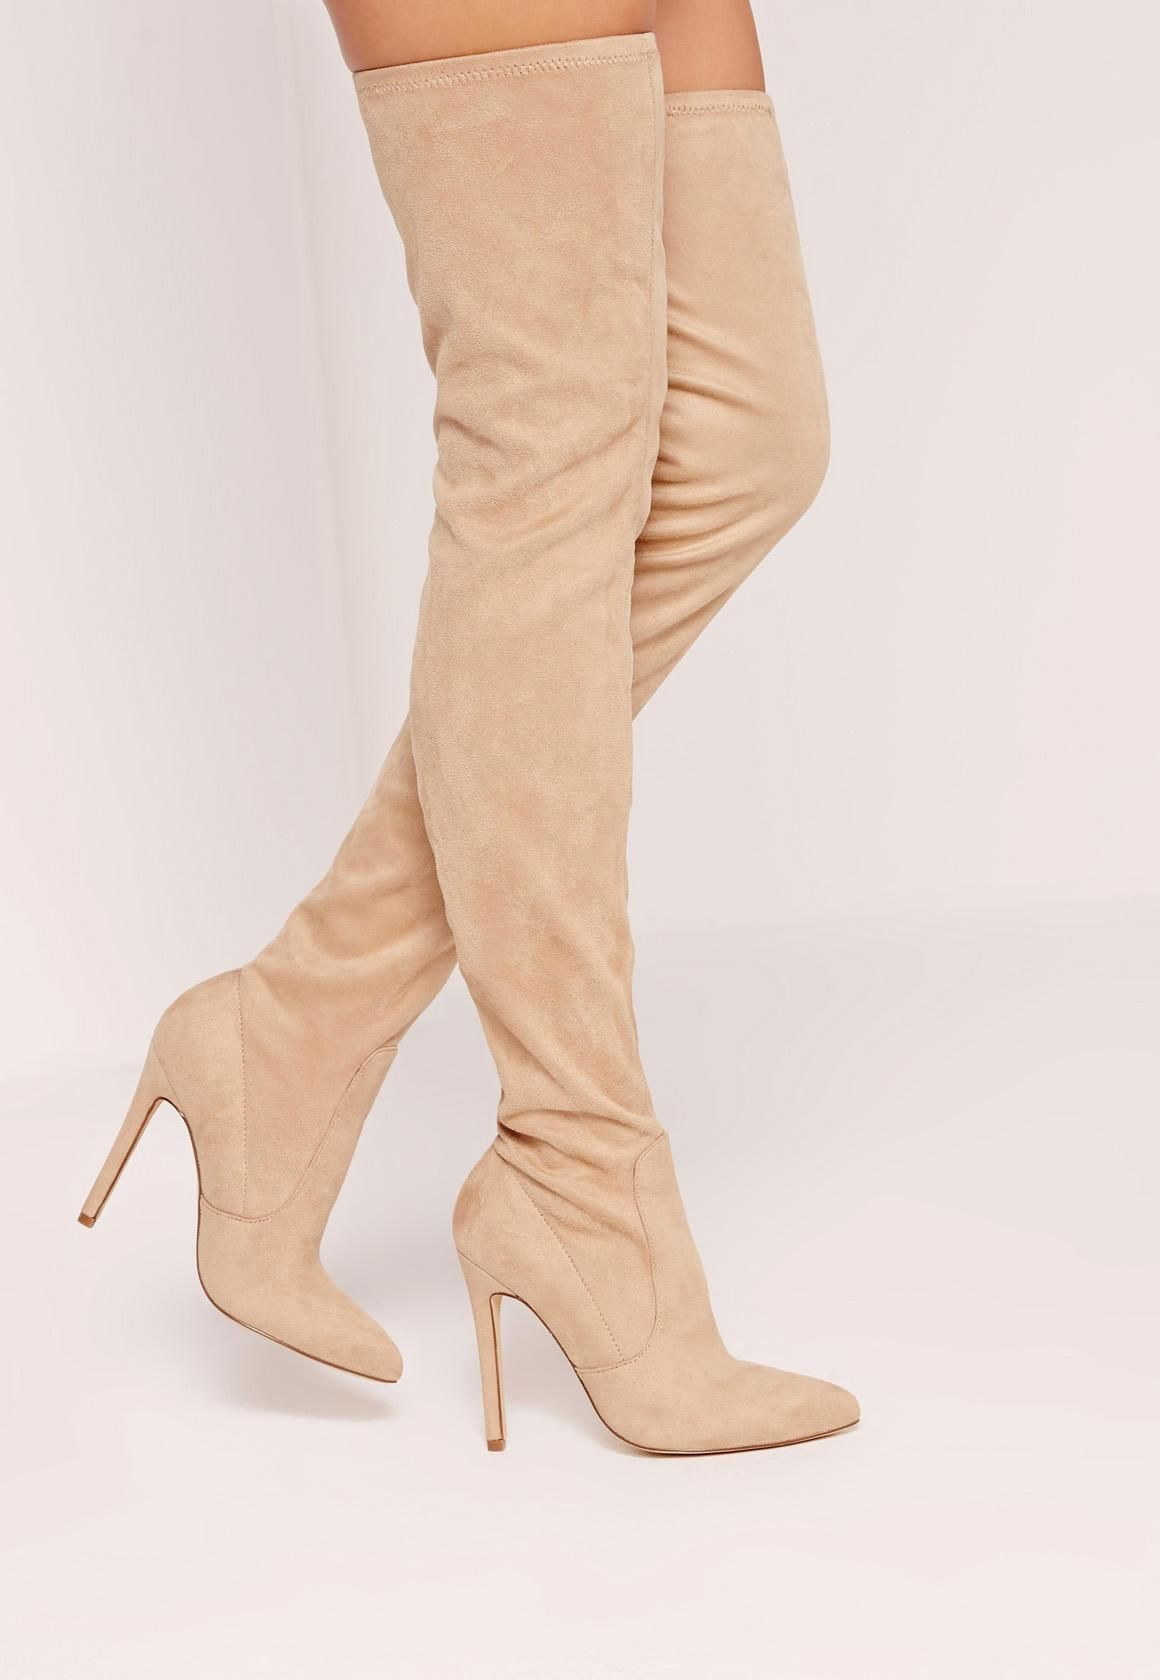 5f88b835599f Missguided - Nude Faux Suede Pointed Toe Over The Knee Heeled Boots ...